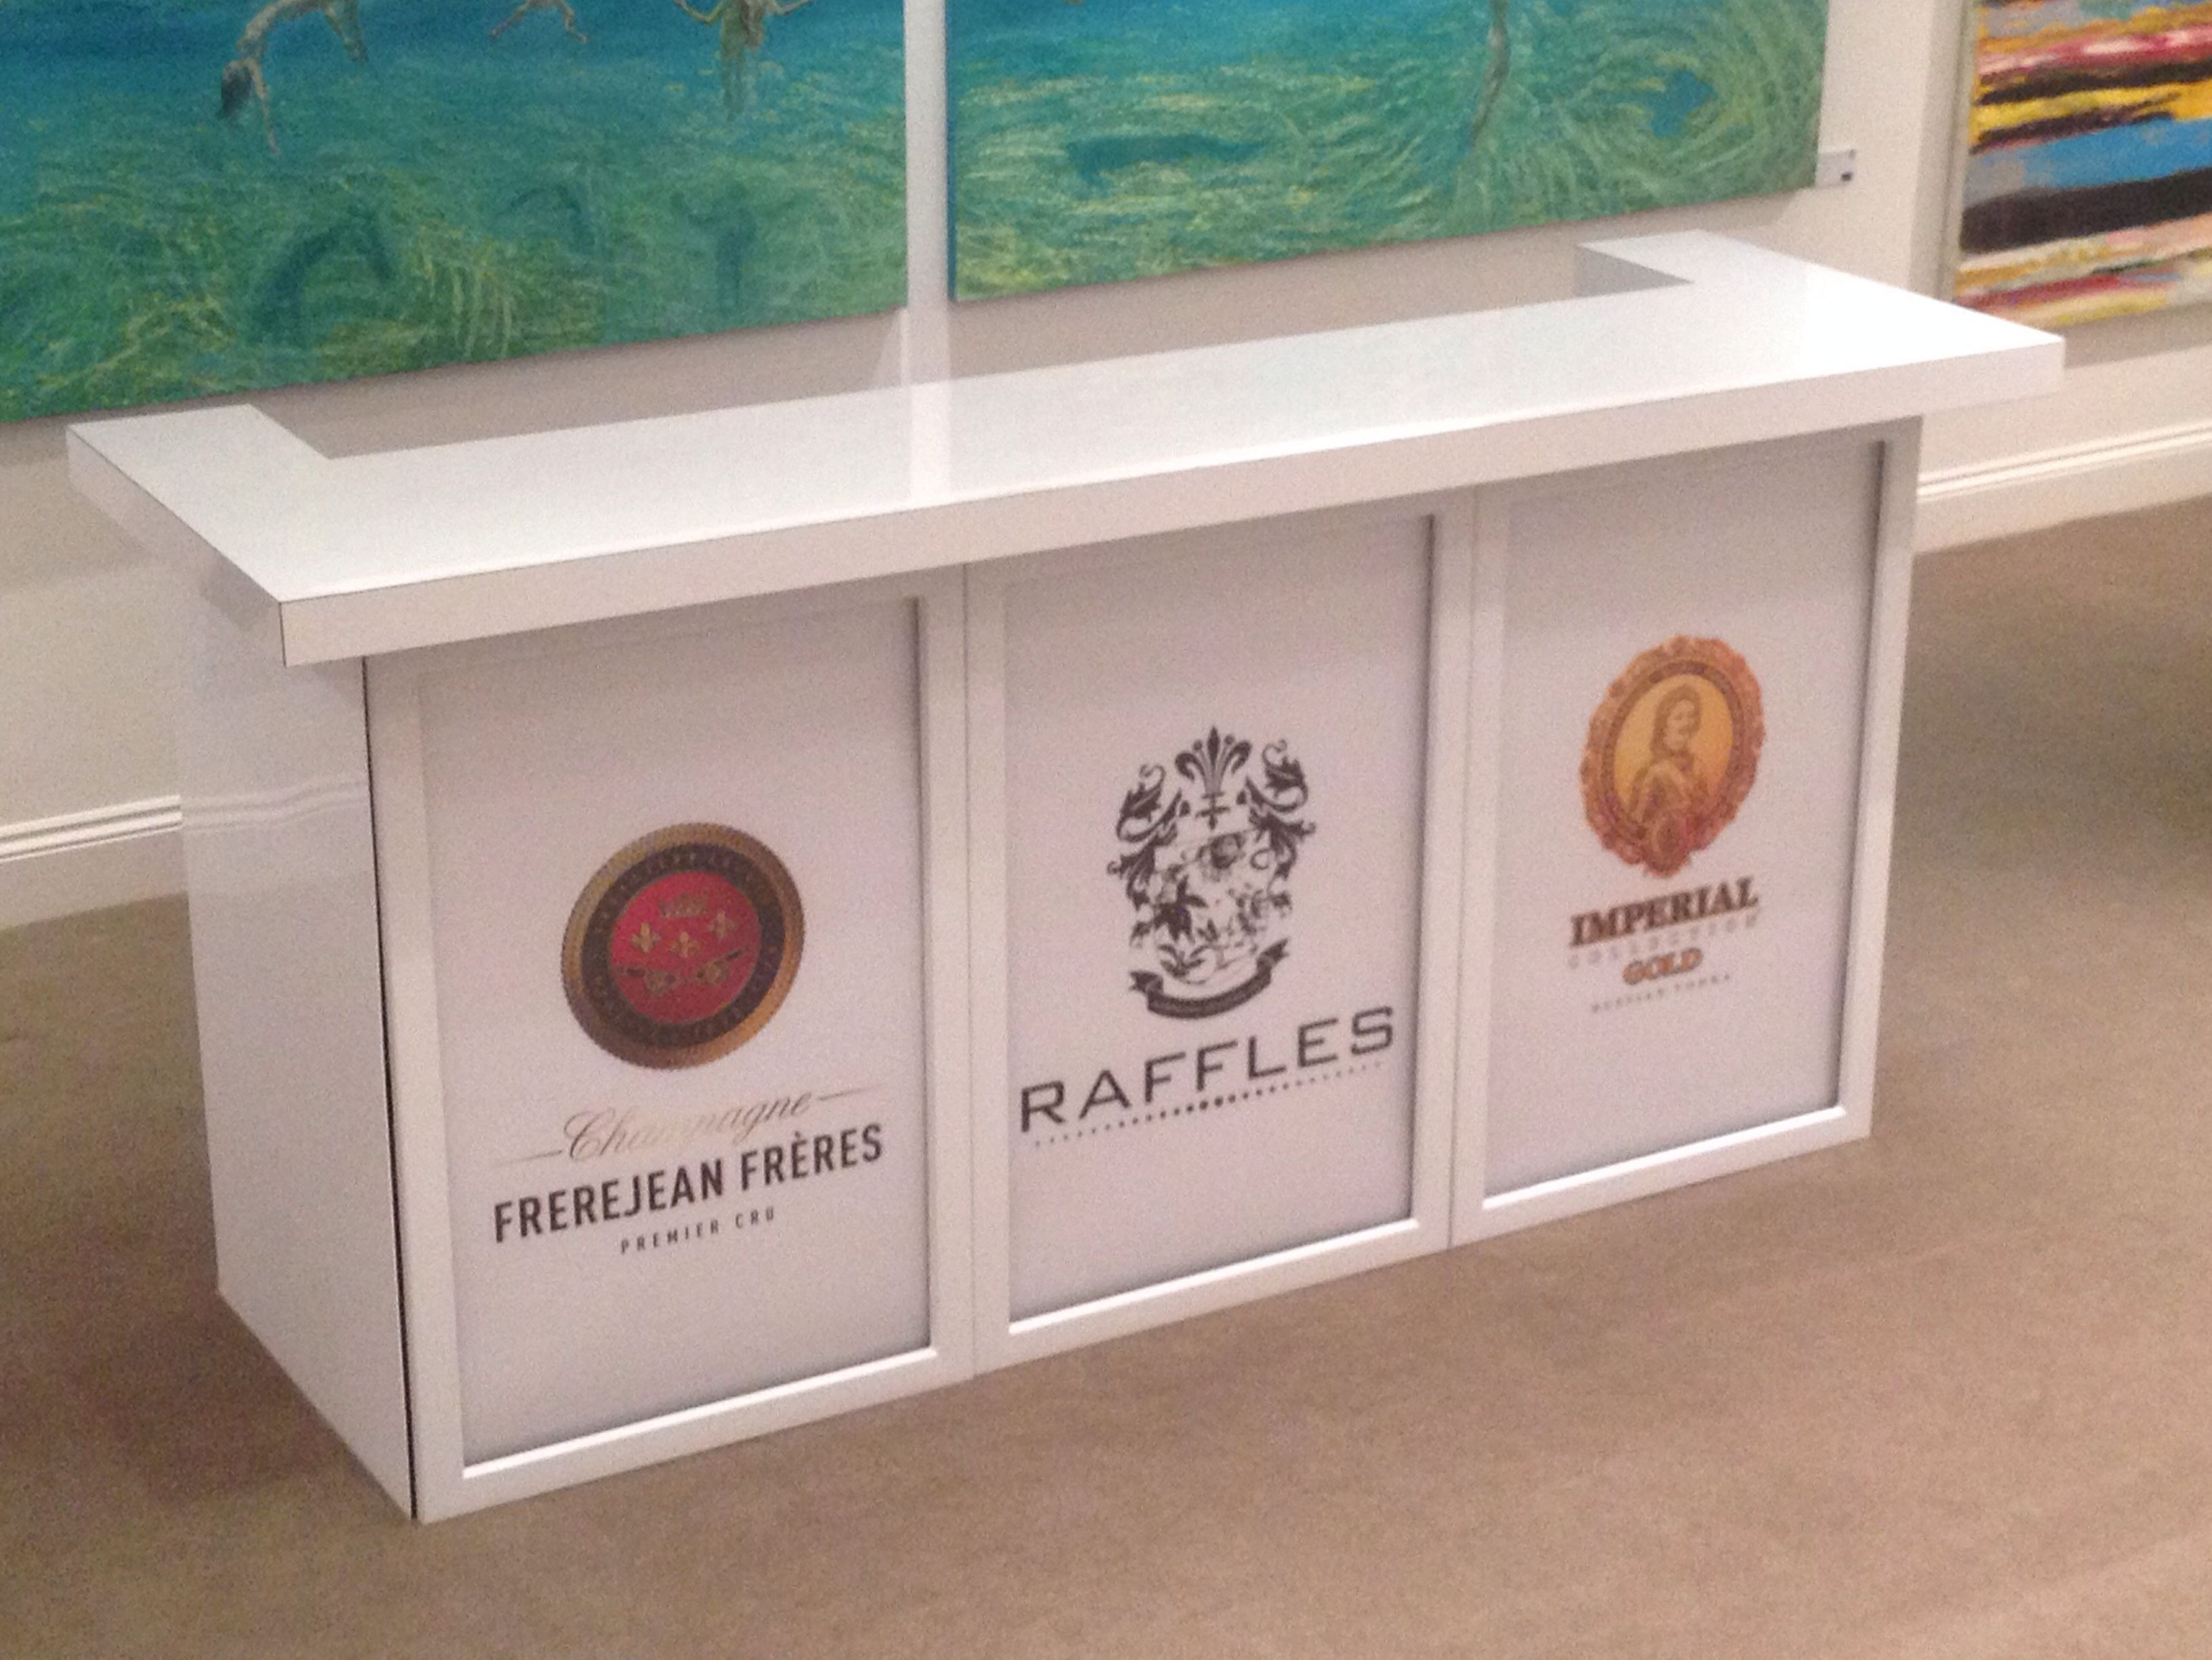 Piano White Gloss Mobile Bar for Gallery Events and Weddings. Inclu ...